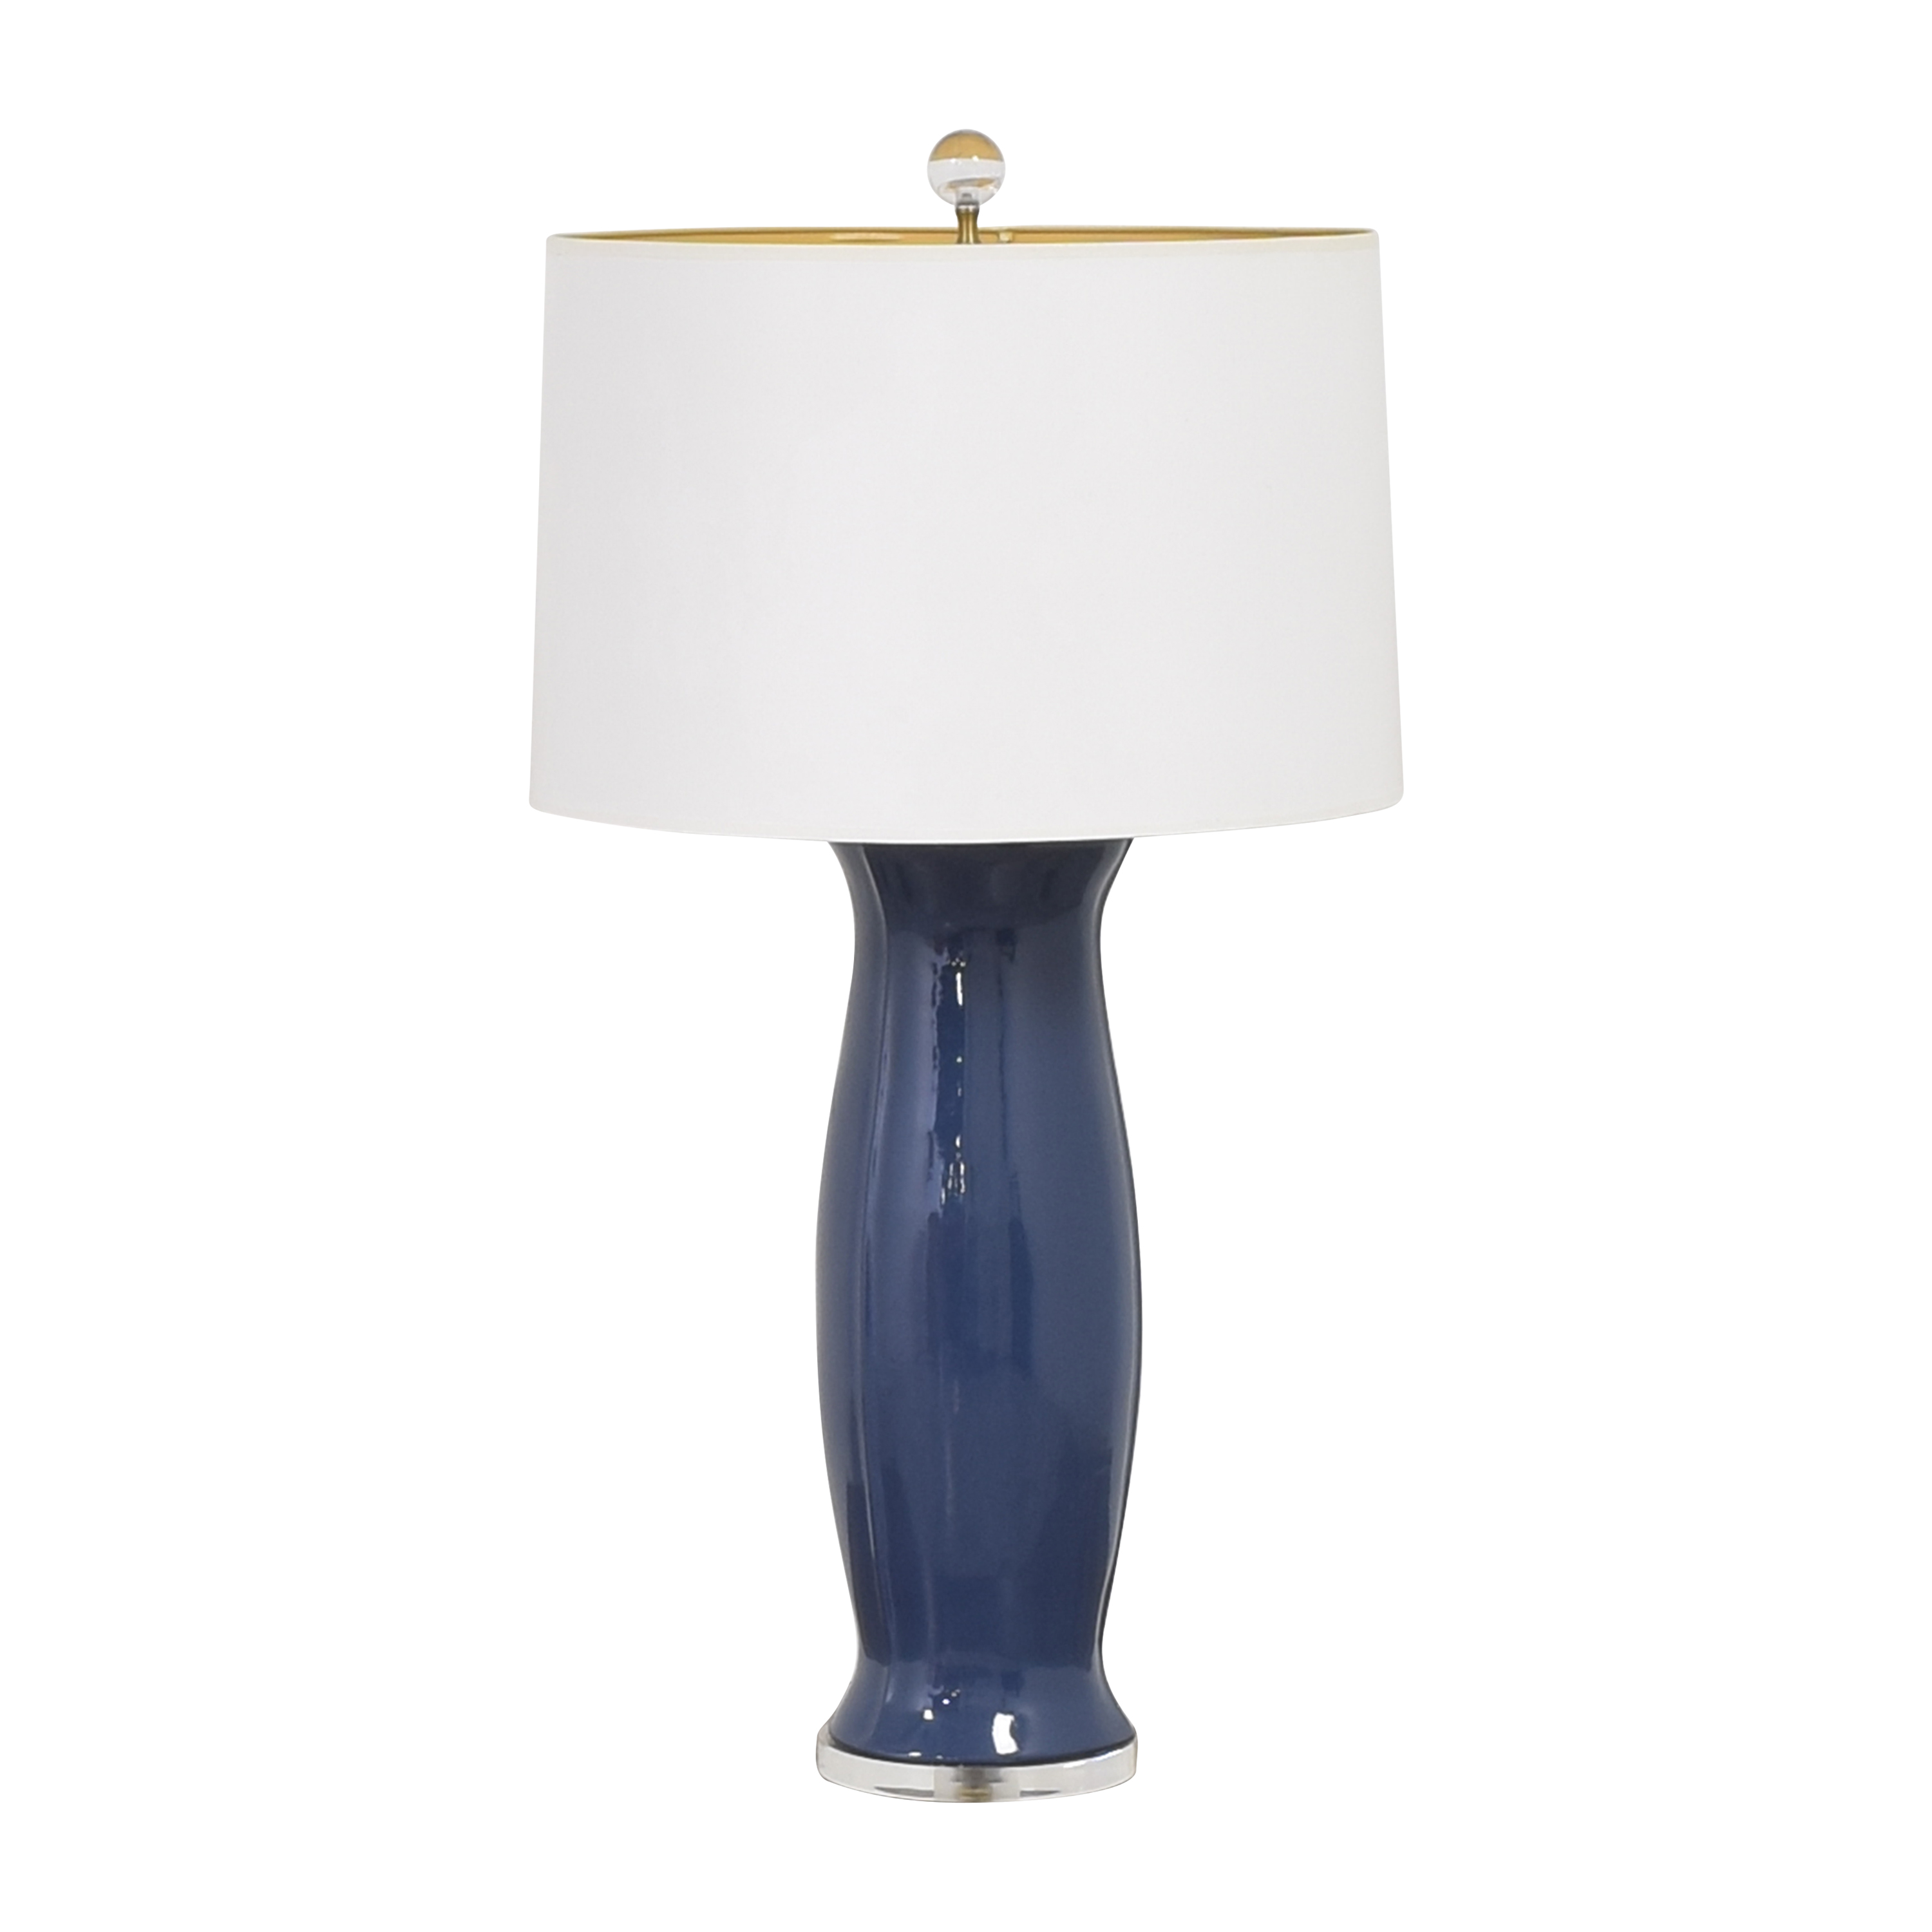 buy The Natural Light The Natural Light Table Lamp online